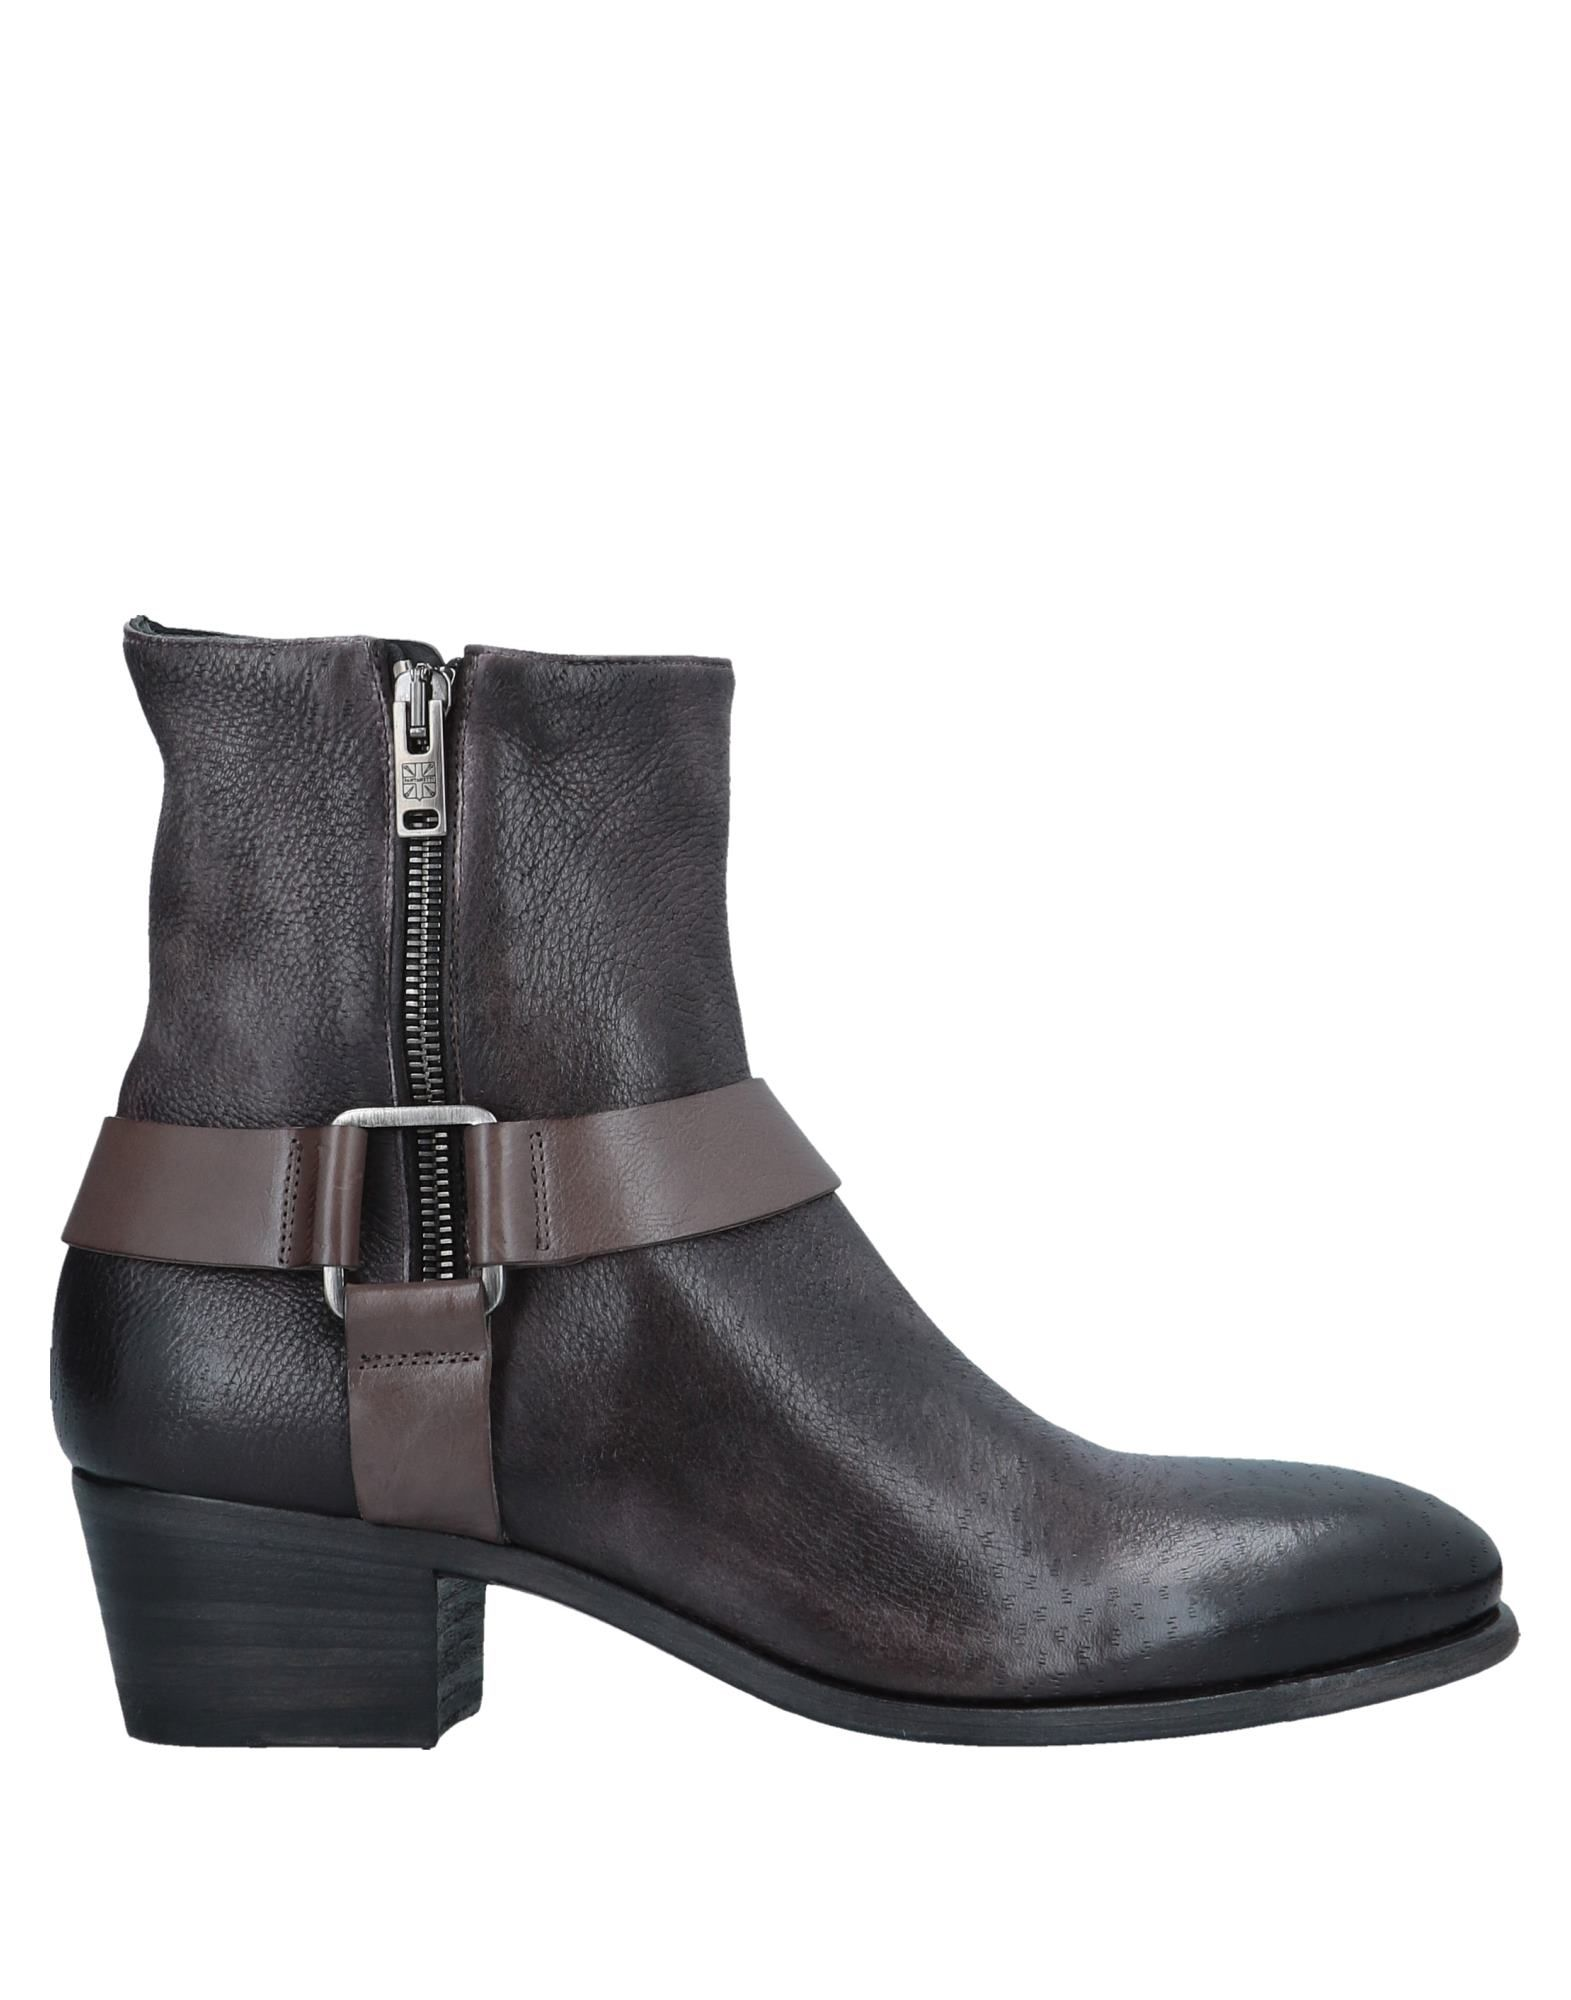 Pantanetti Ankle Boot - Women Women Women Pantanetti Ankle Boots online on  United Kingdom - 11557700SW a8de95